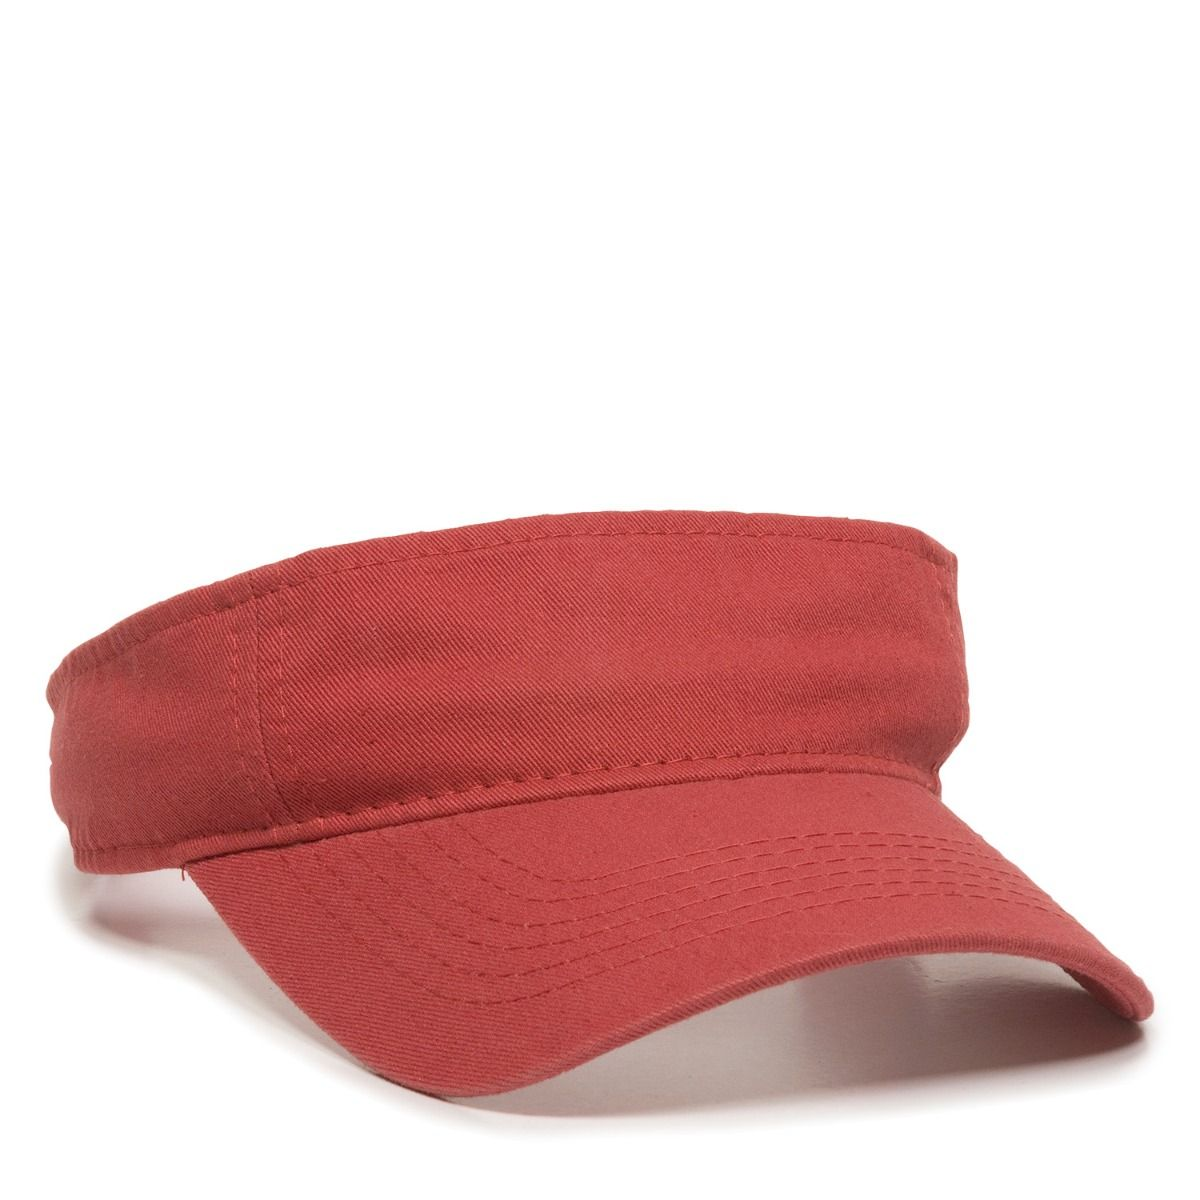 OC Sports GWTV-100  Adjustable Garment Washed Twill Visors - Nantucket - HIT A Double